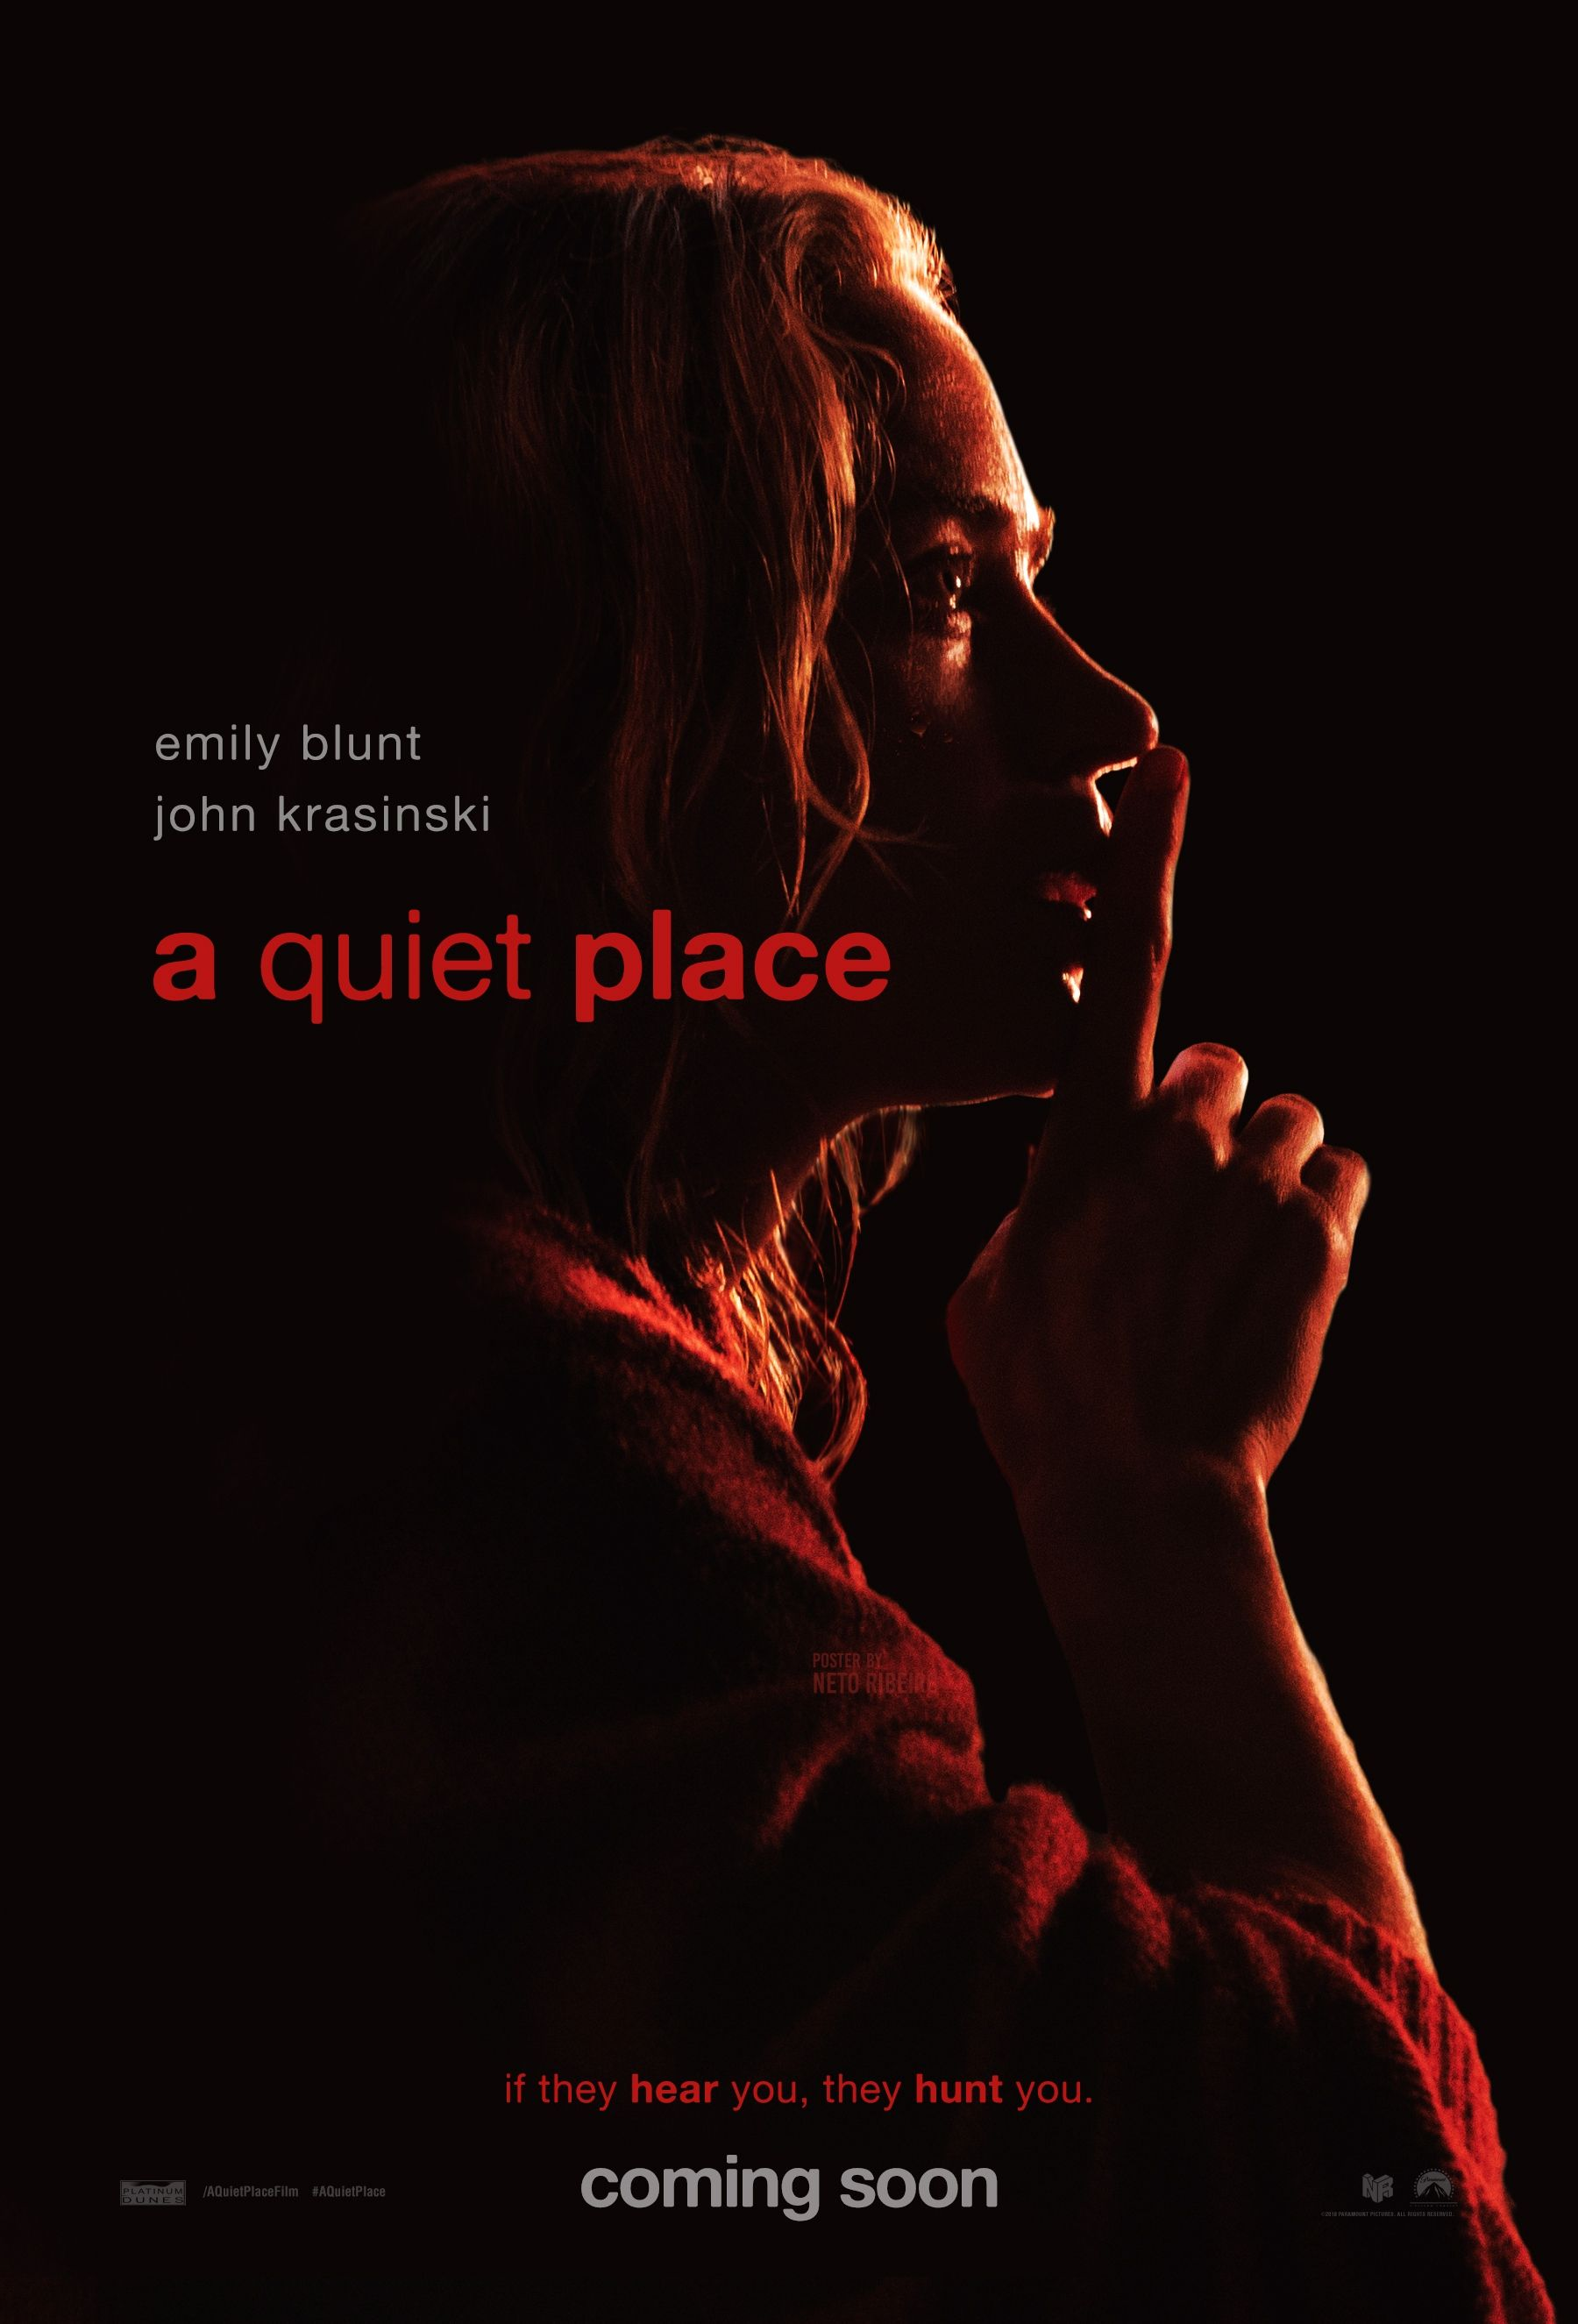 A Quiet Place (2018) [1800 x 2651] Definitely want to check